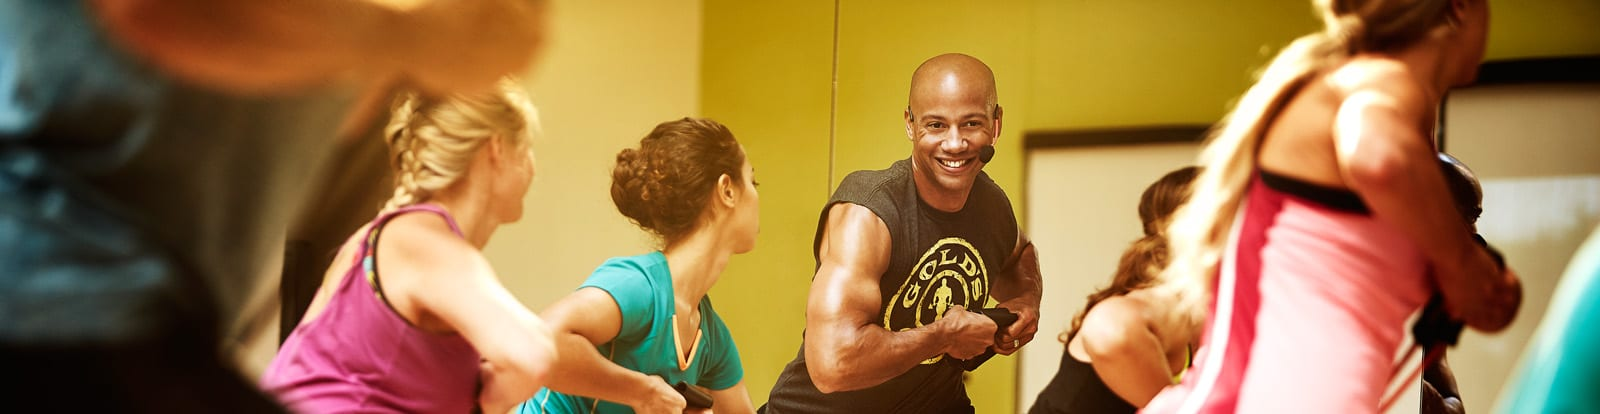 Best Gym in Dundalk MD | Gold's Gym | (410) 284-4653